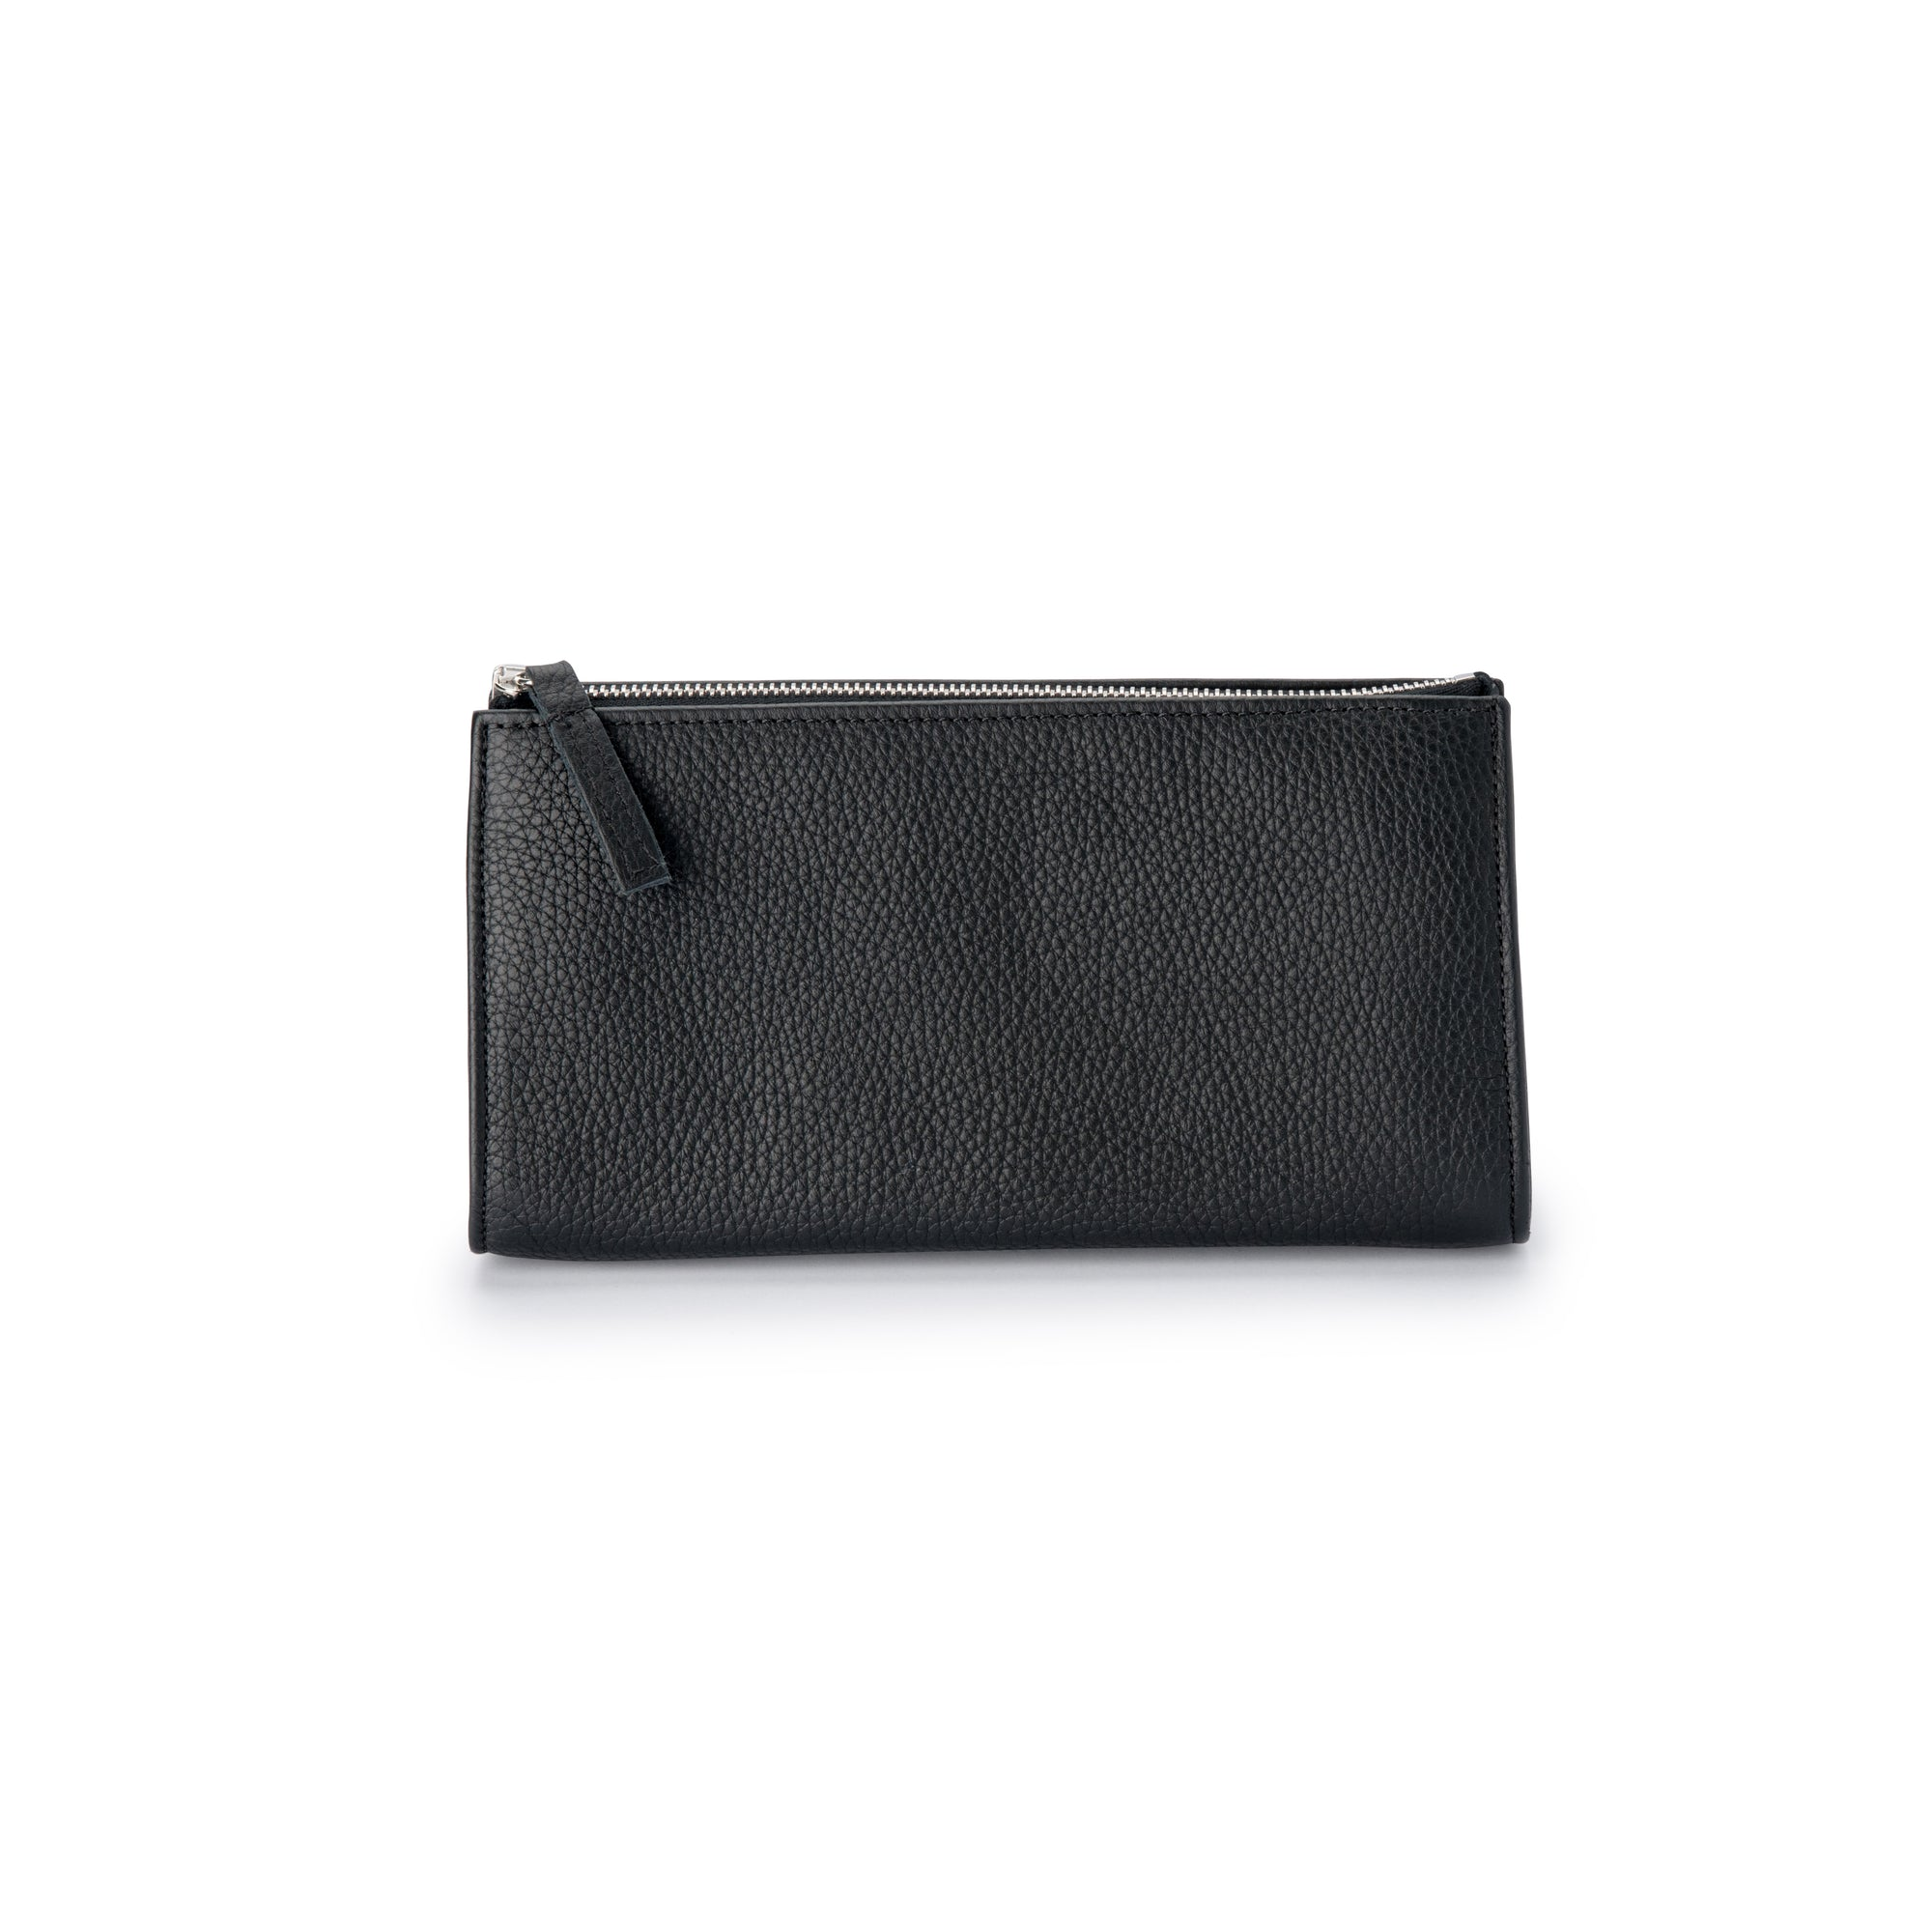 LIN8 unisex small bag for him and her. Made with genuine natural full grain taurillon leather imported from France. Wear it 3-ways as clutch, wristlet, long cross-body strap. Make, design, create your own bespoke leather bag today